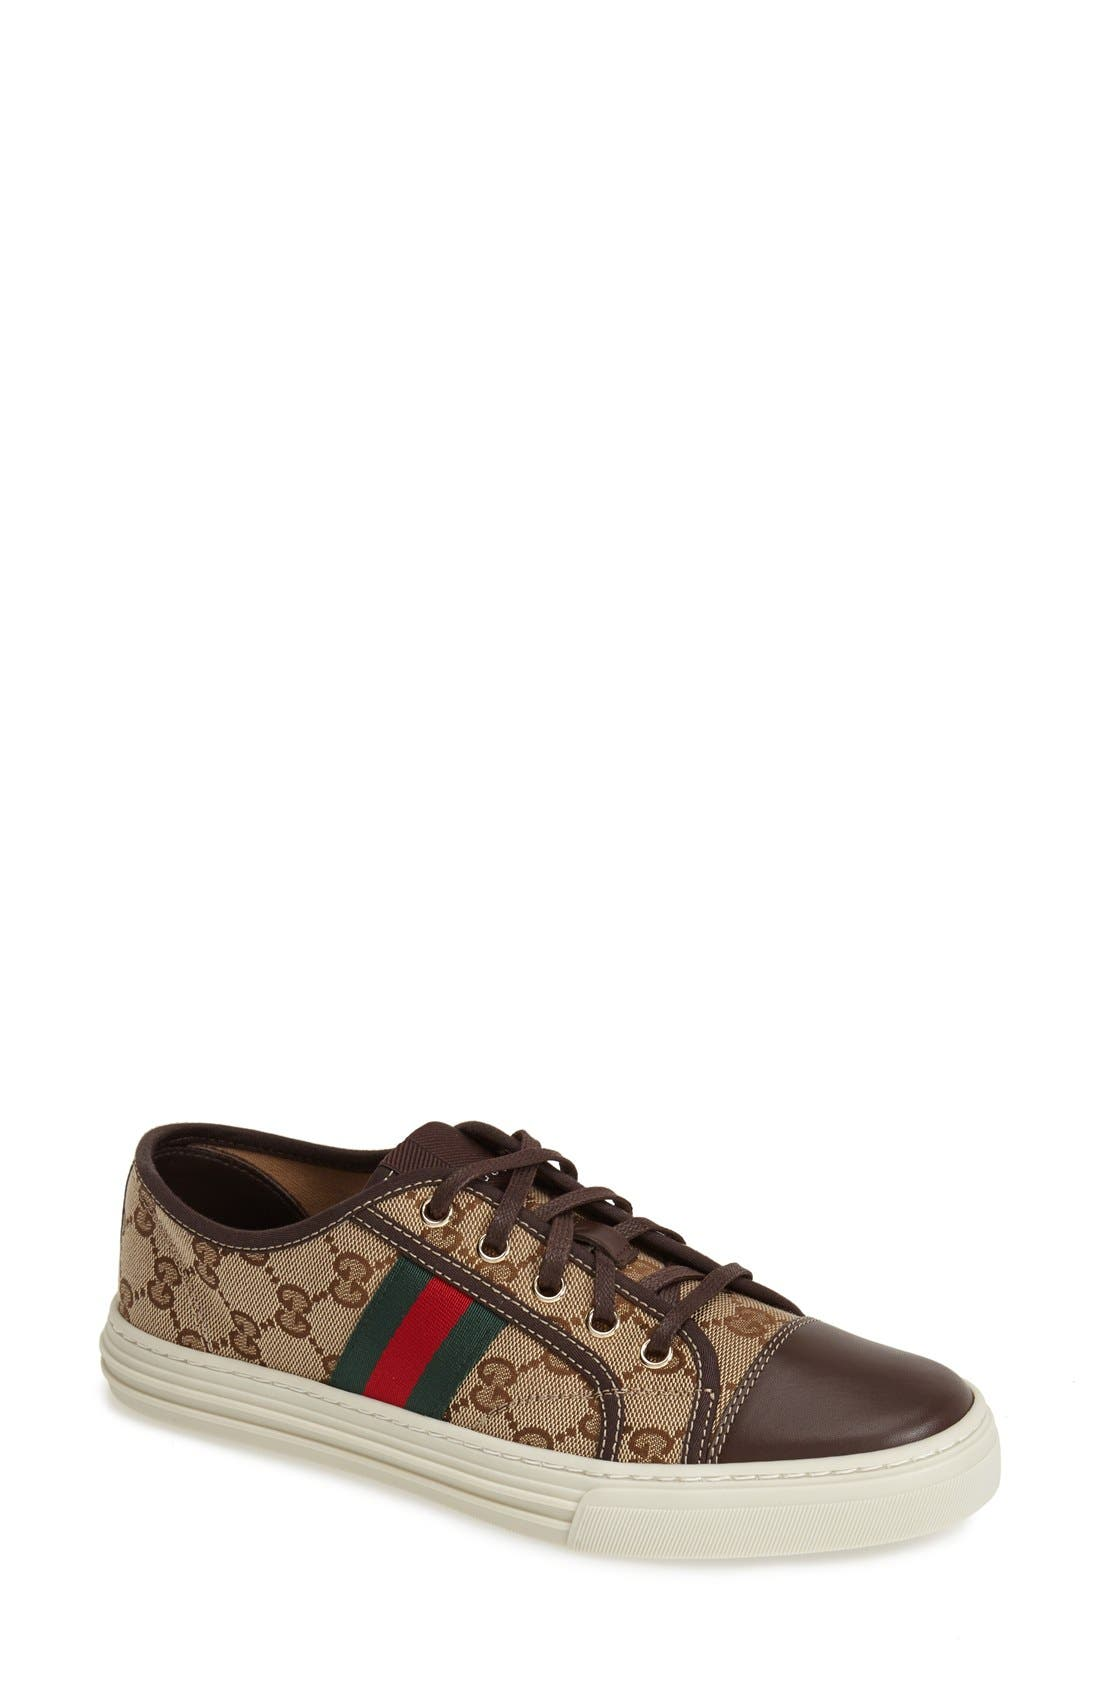 Main Image - Gucci 'California' Sneaker (Women)